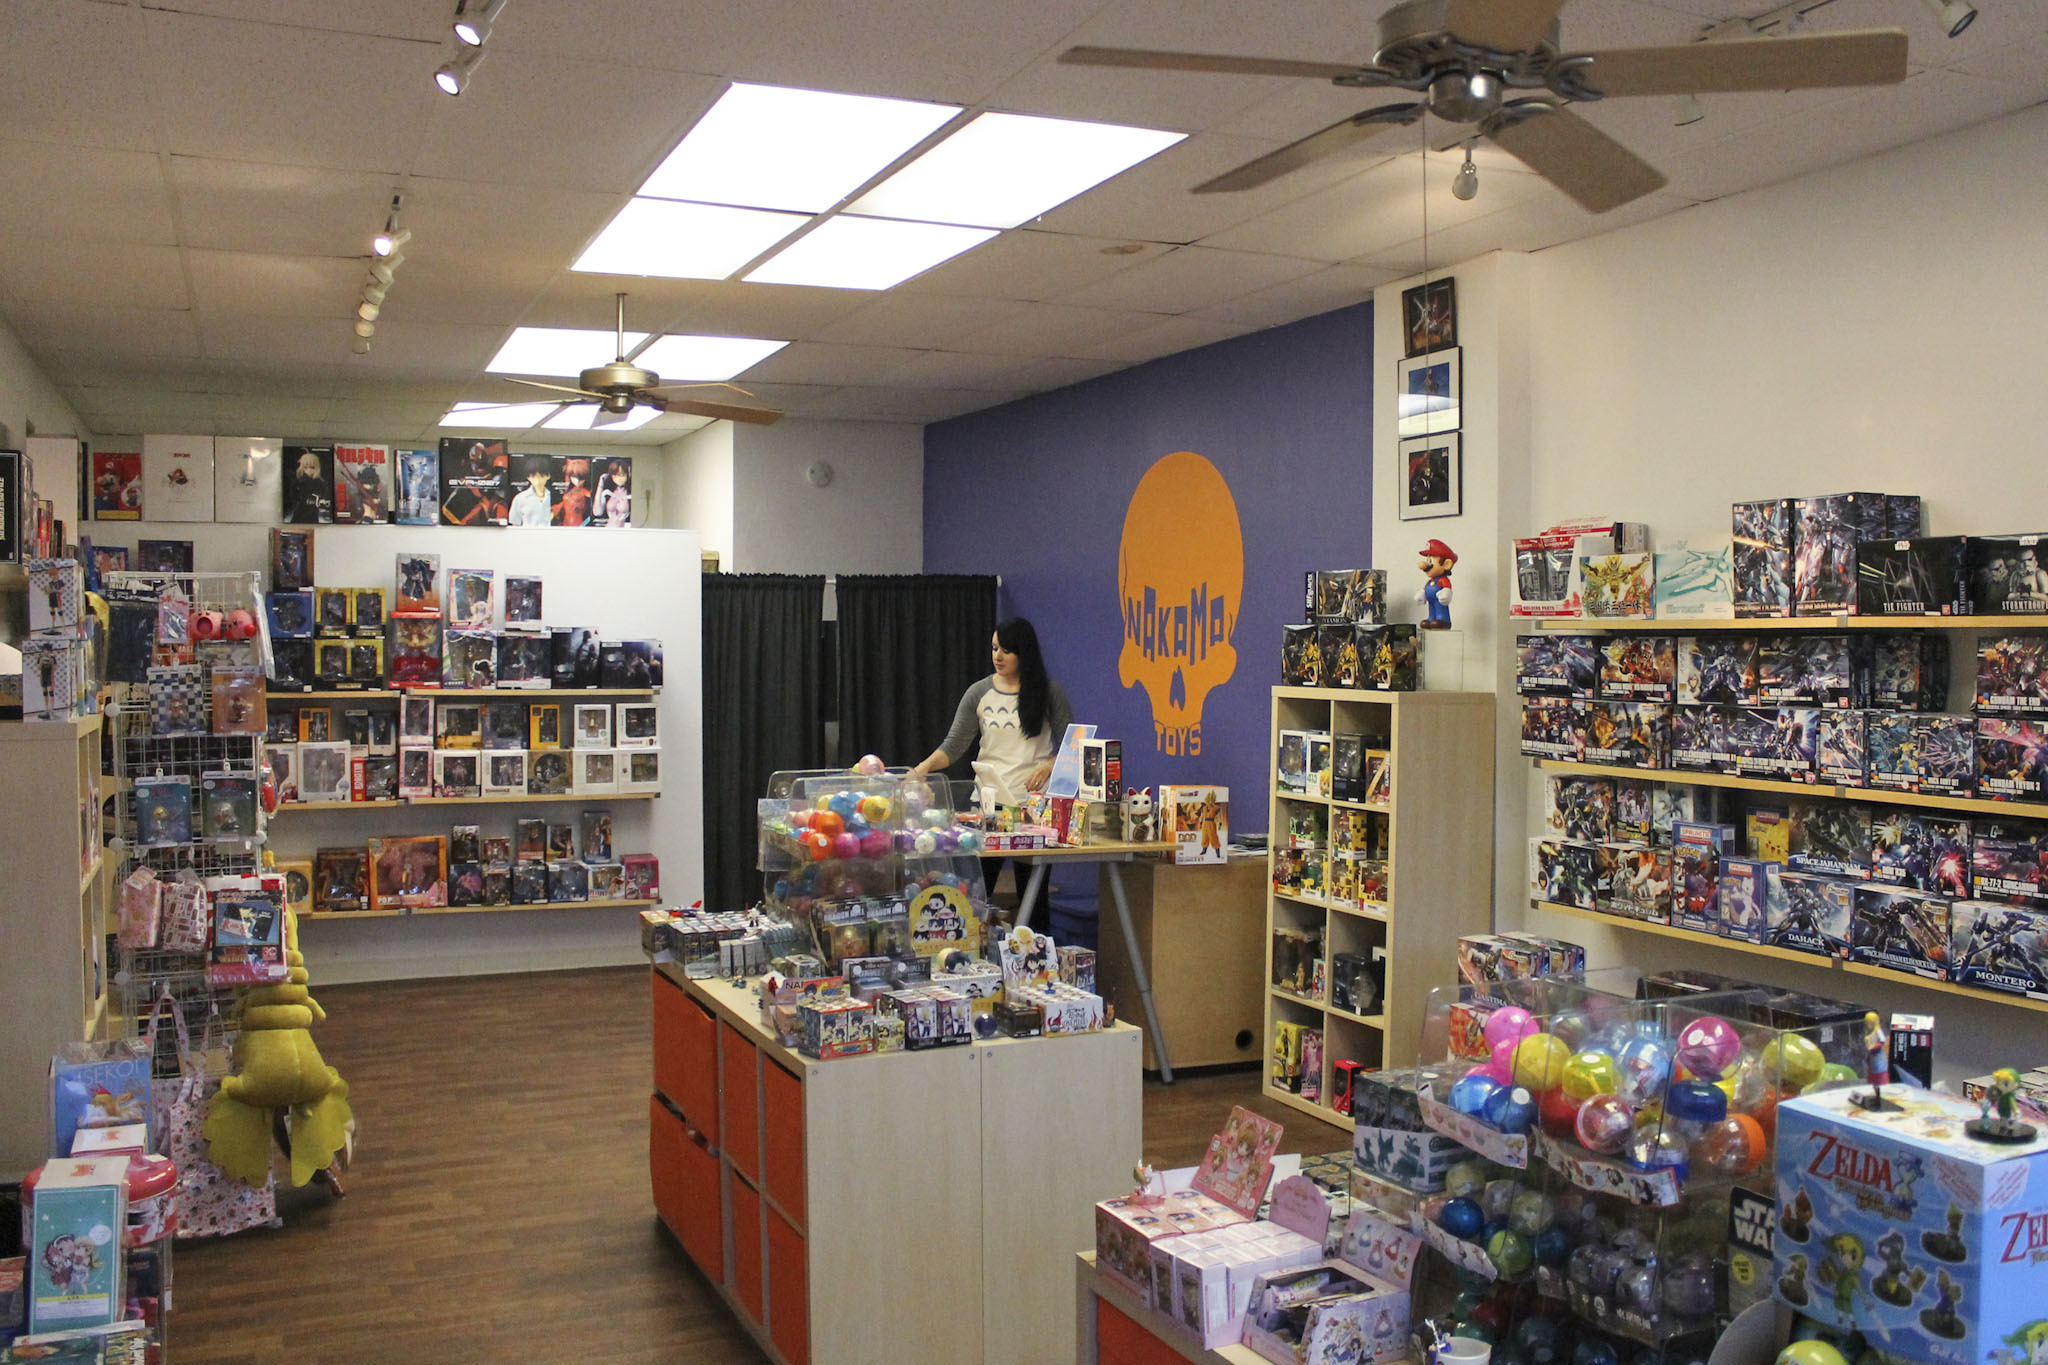 Nakama Toys in Logan Square